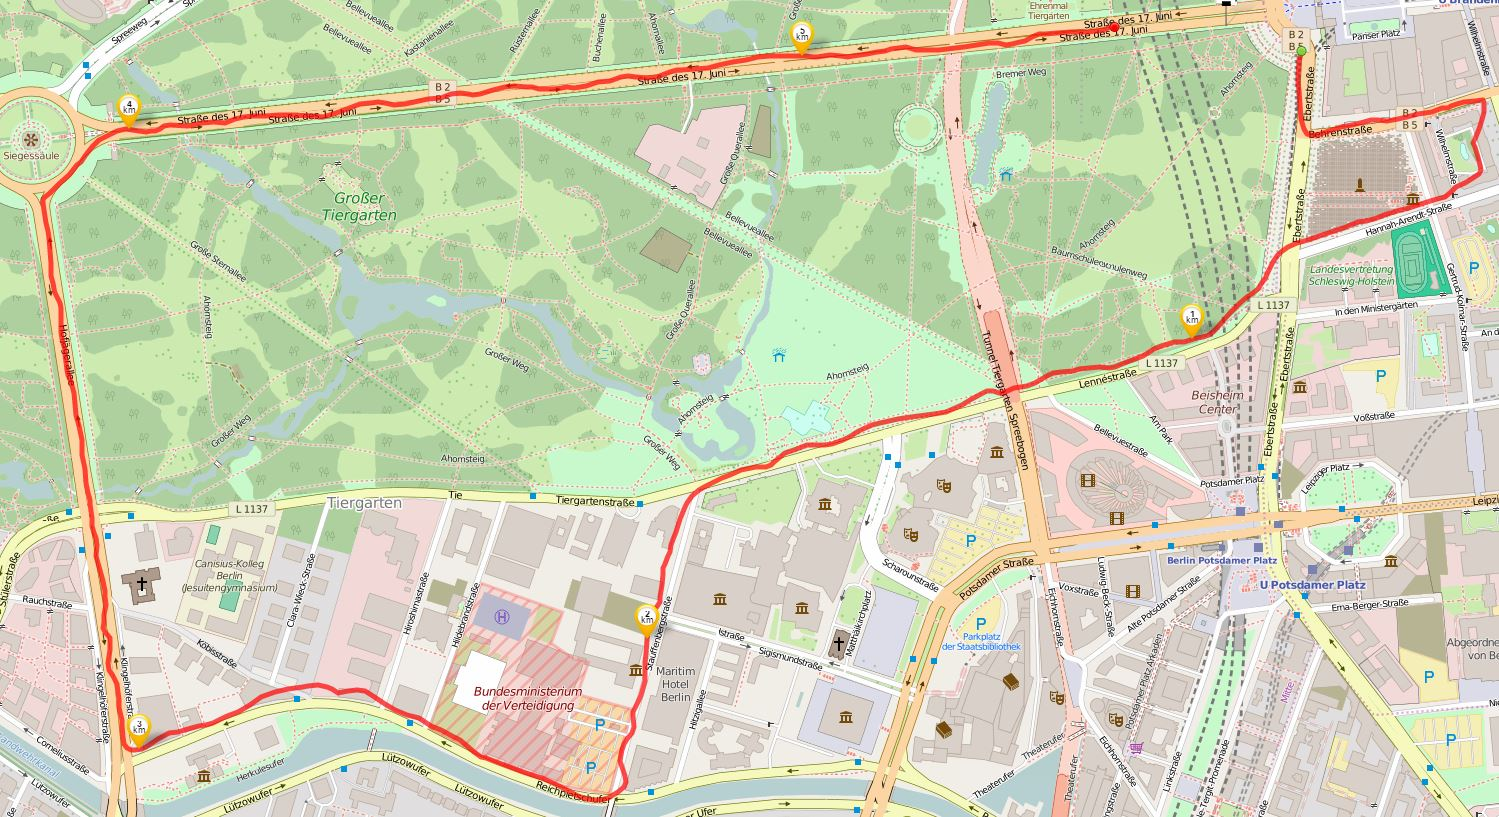 Quelle: runtastic, Open Street Map